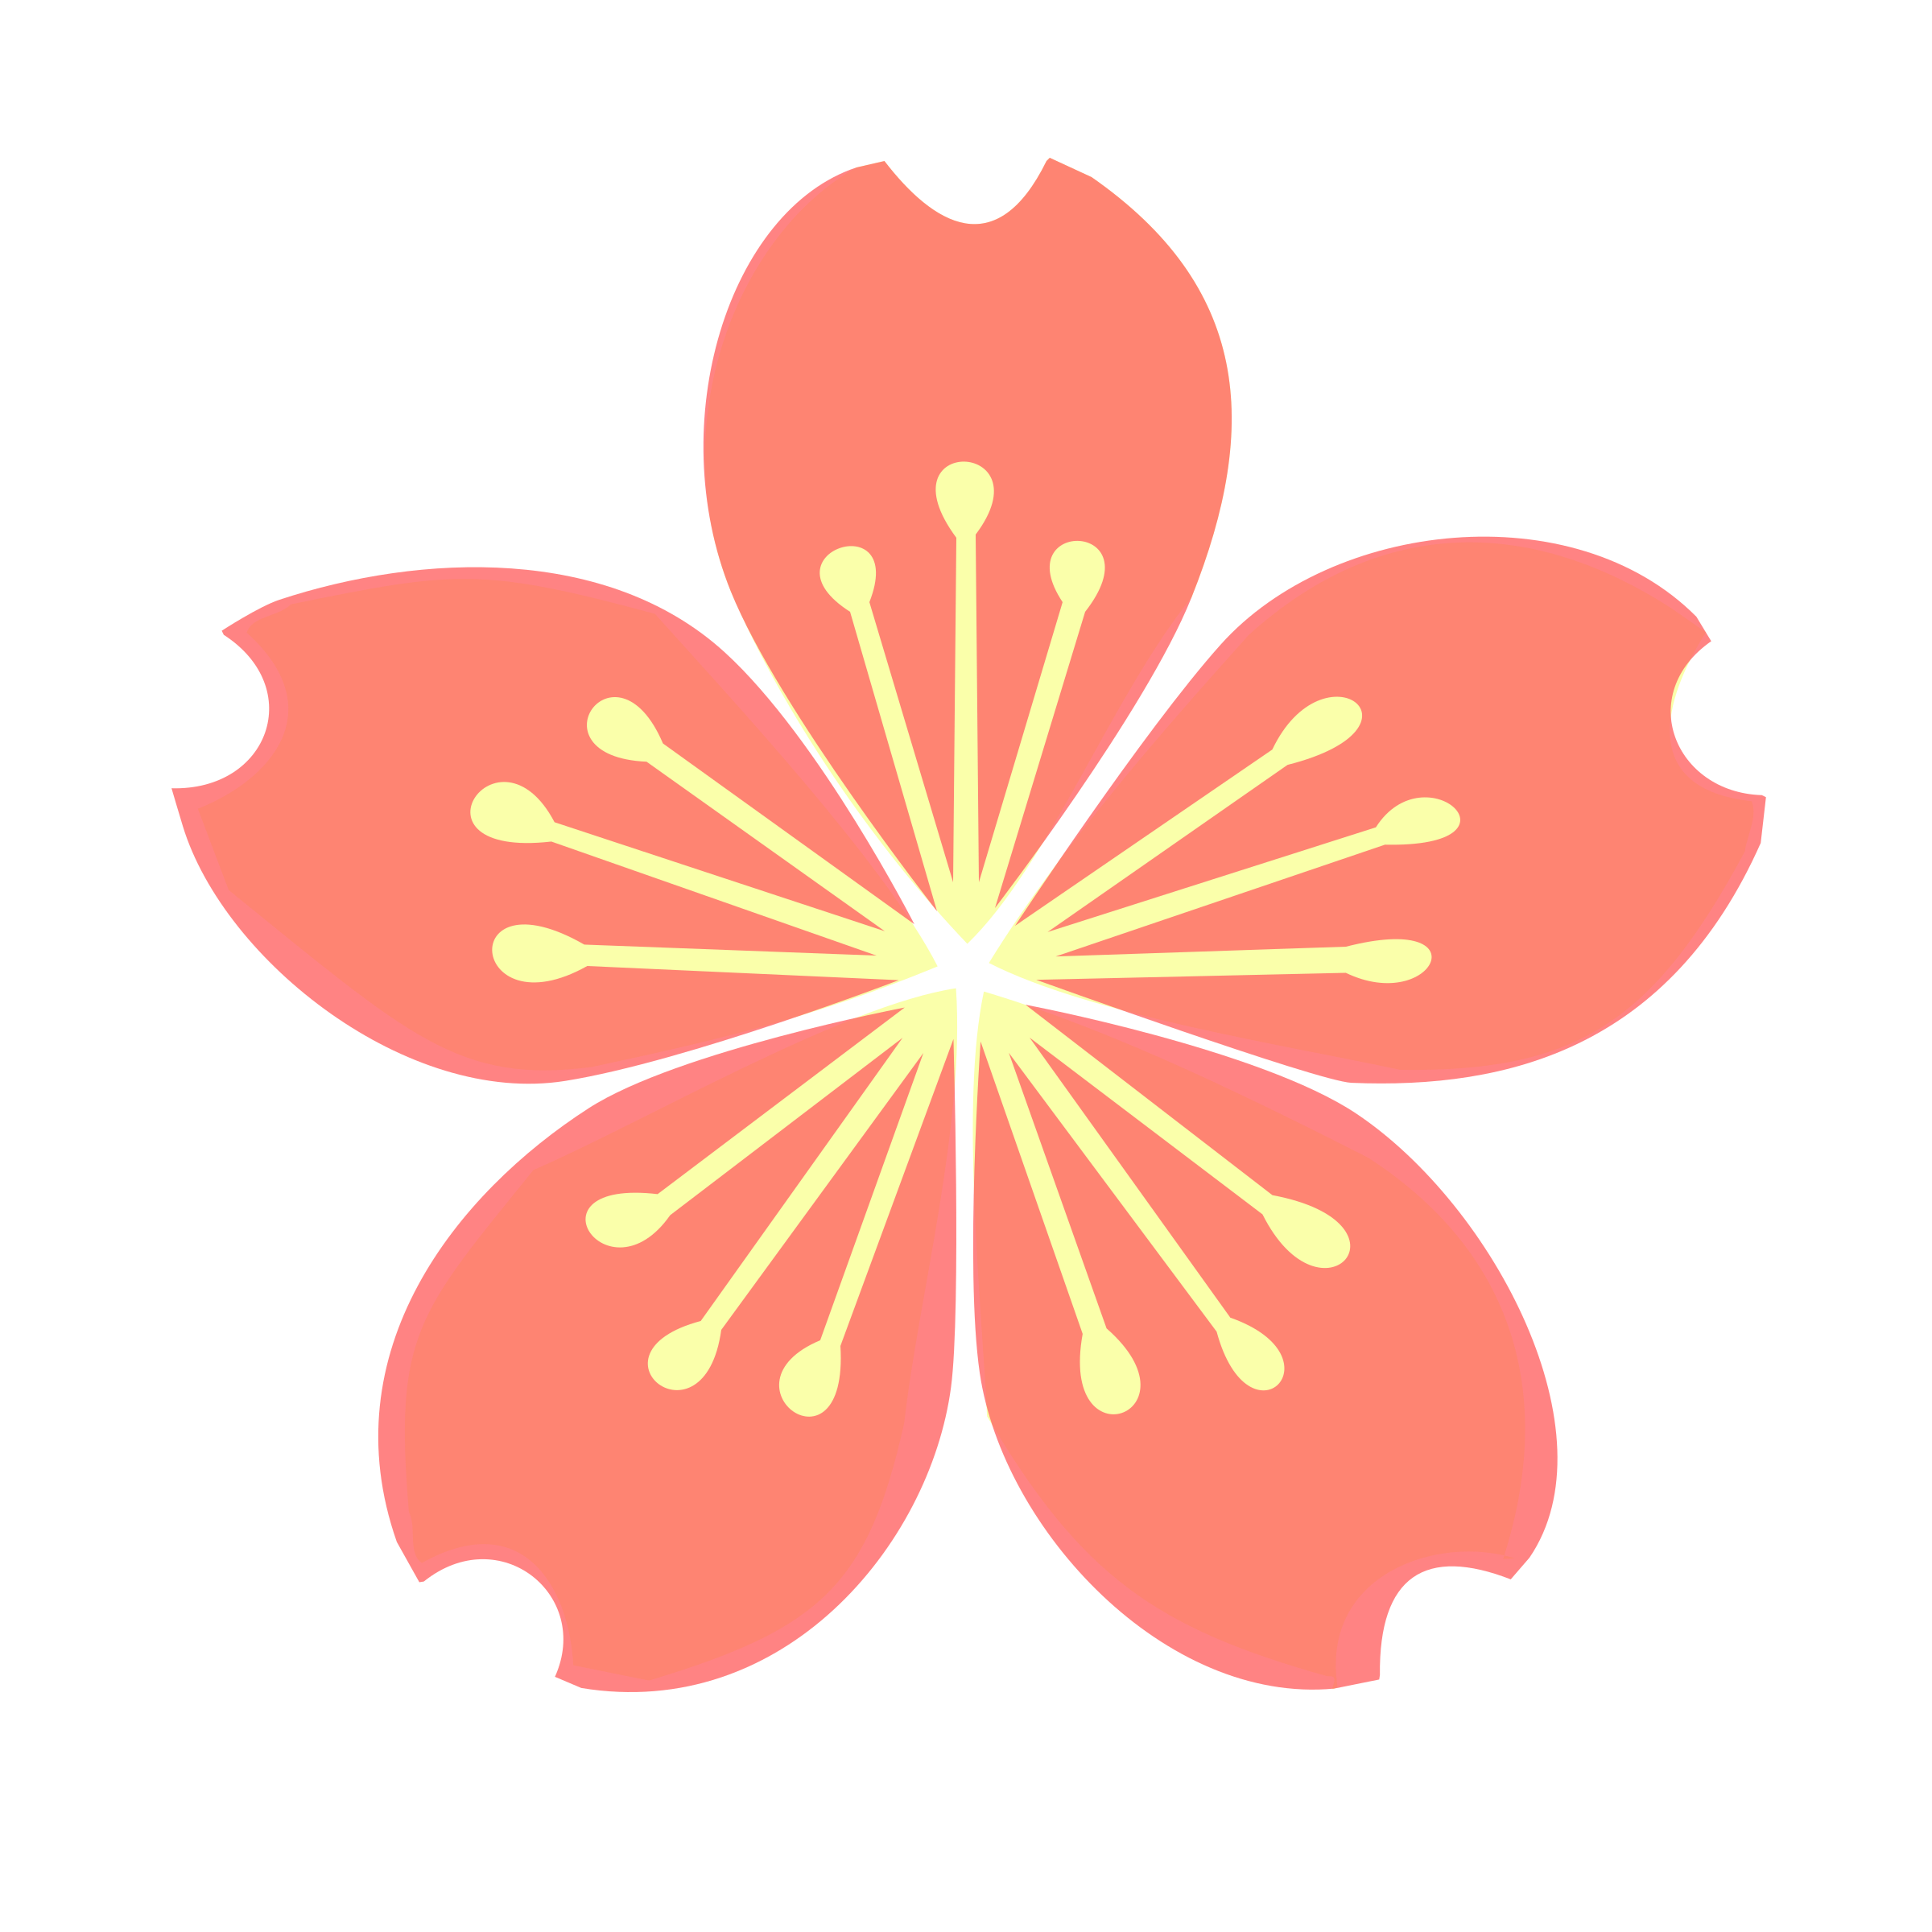 Hibiscus clipart animated. Cherry blossom loading spinner